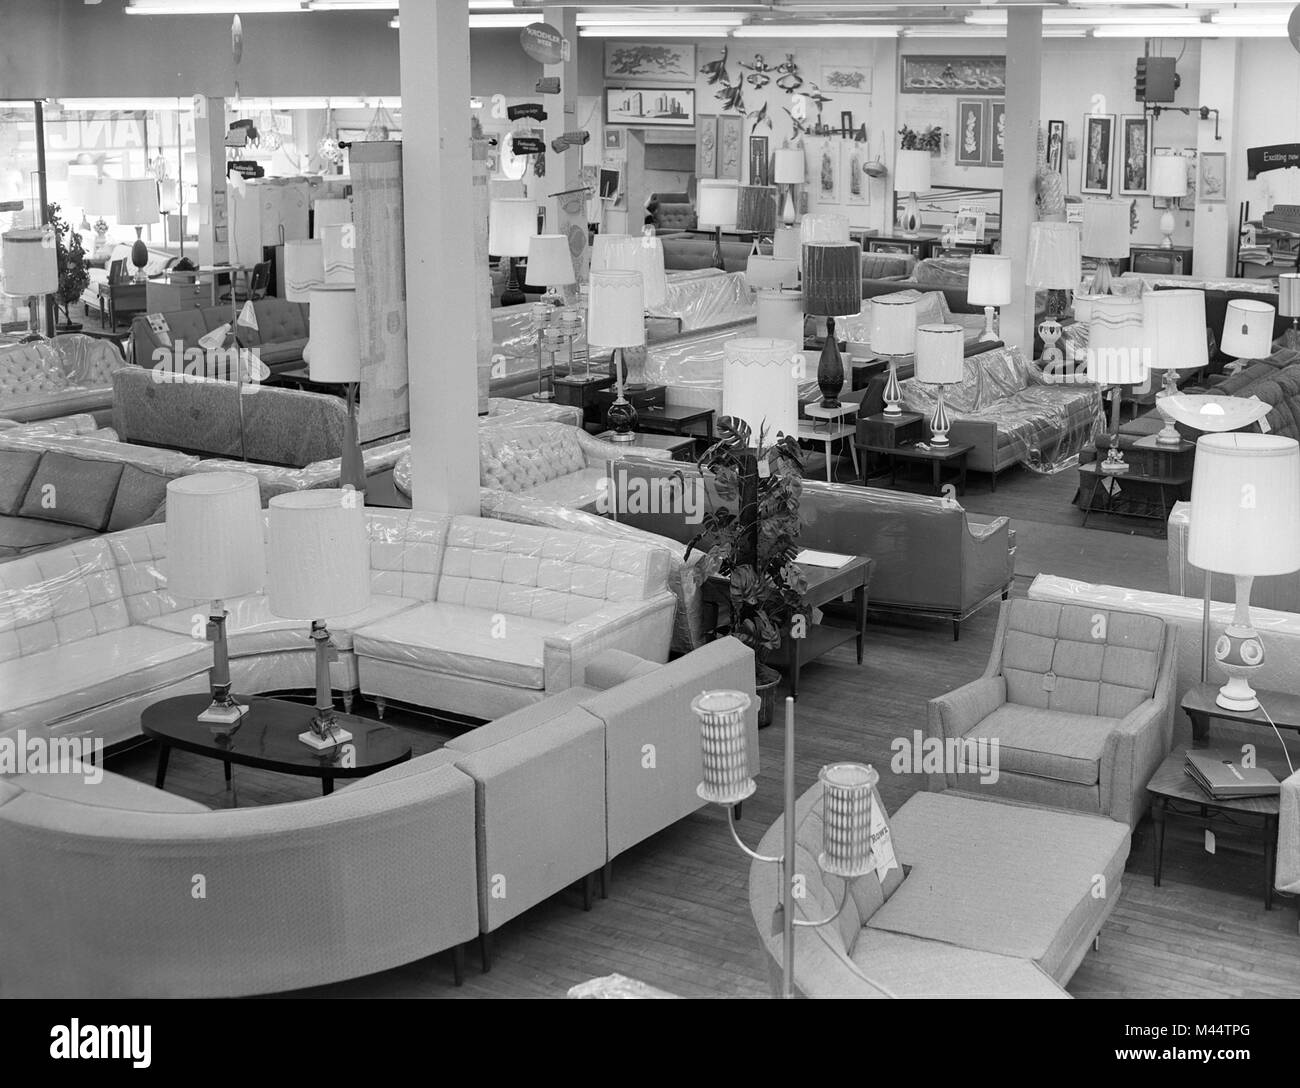 Furniture Store In Chicago Is Crowded With Sofas And Lamps For Mid Century  Homebuyers, Ca. 1956